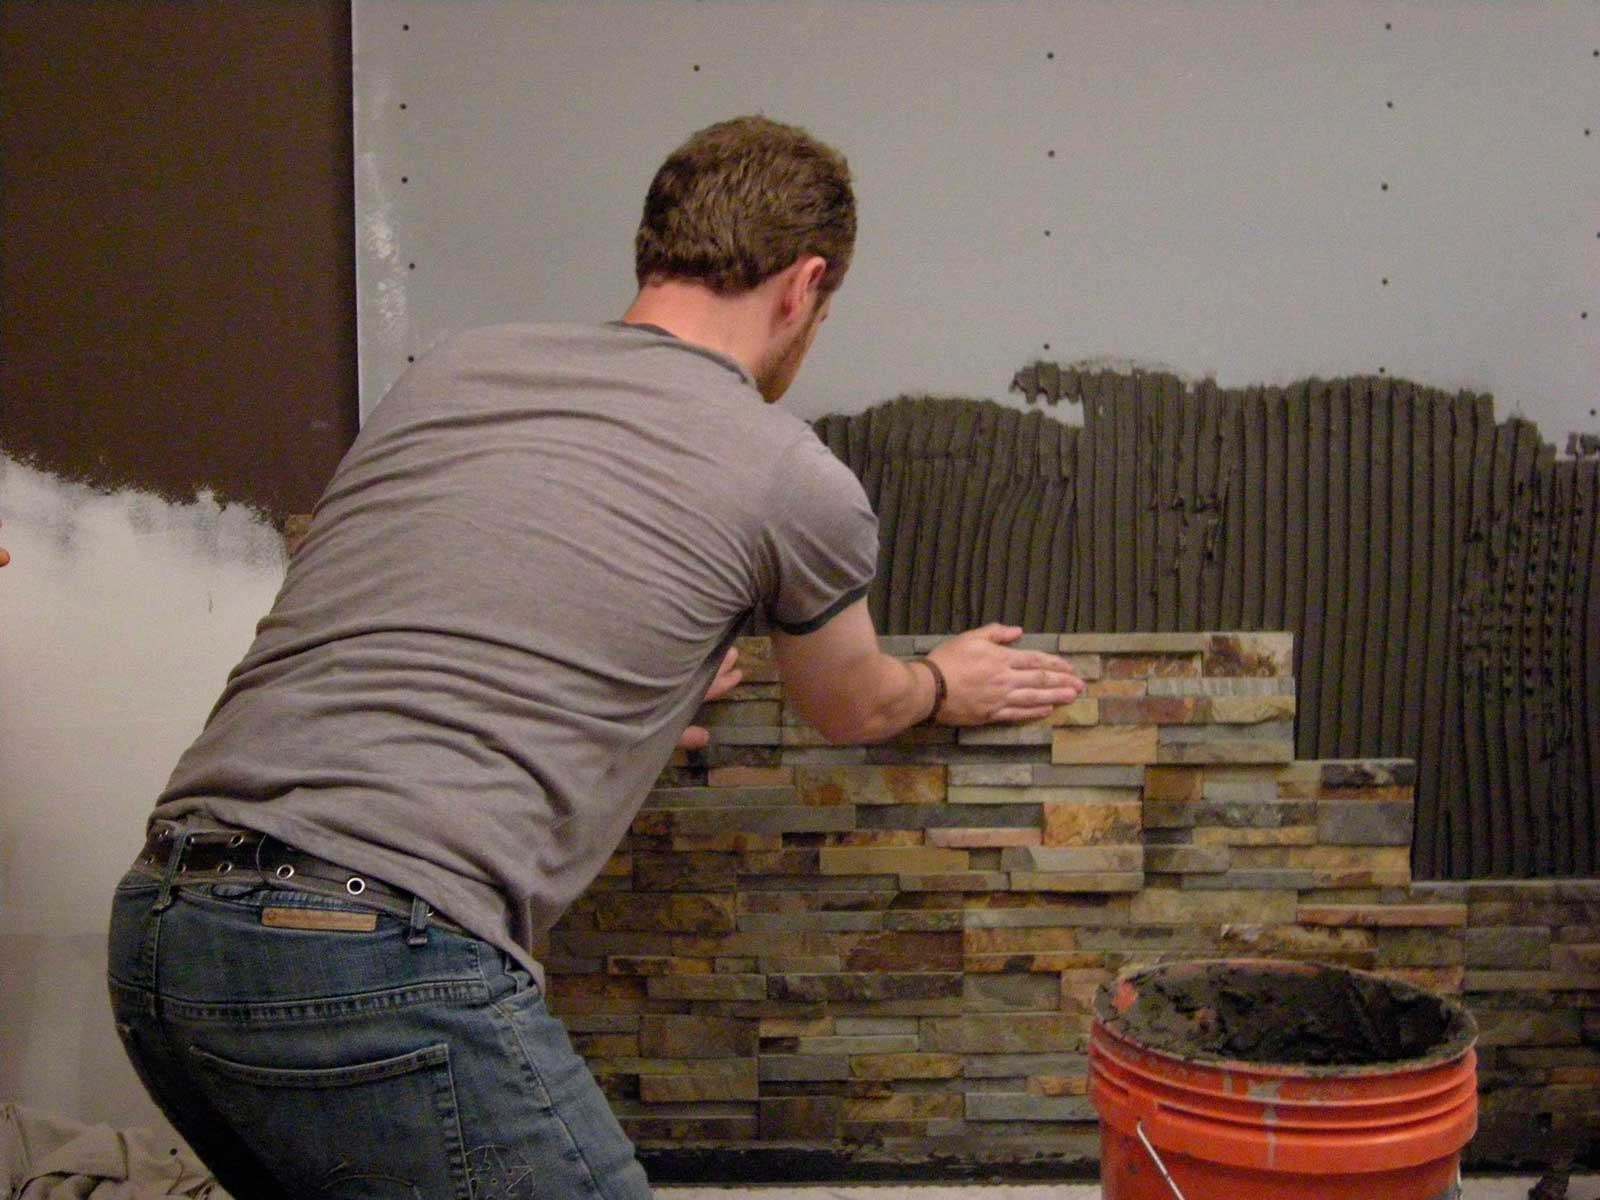 Thinset for Stone Veneer Installations Explained